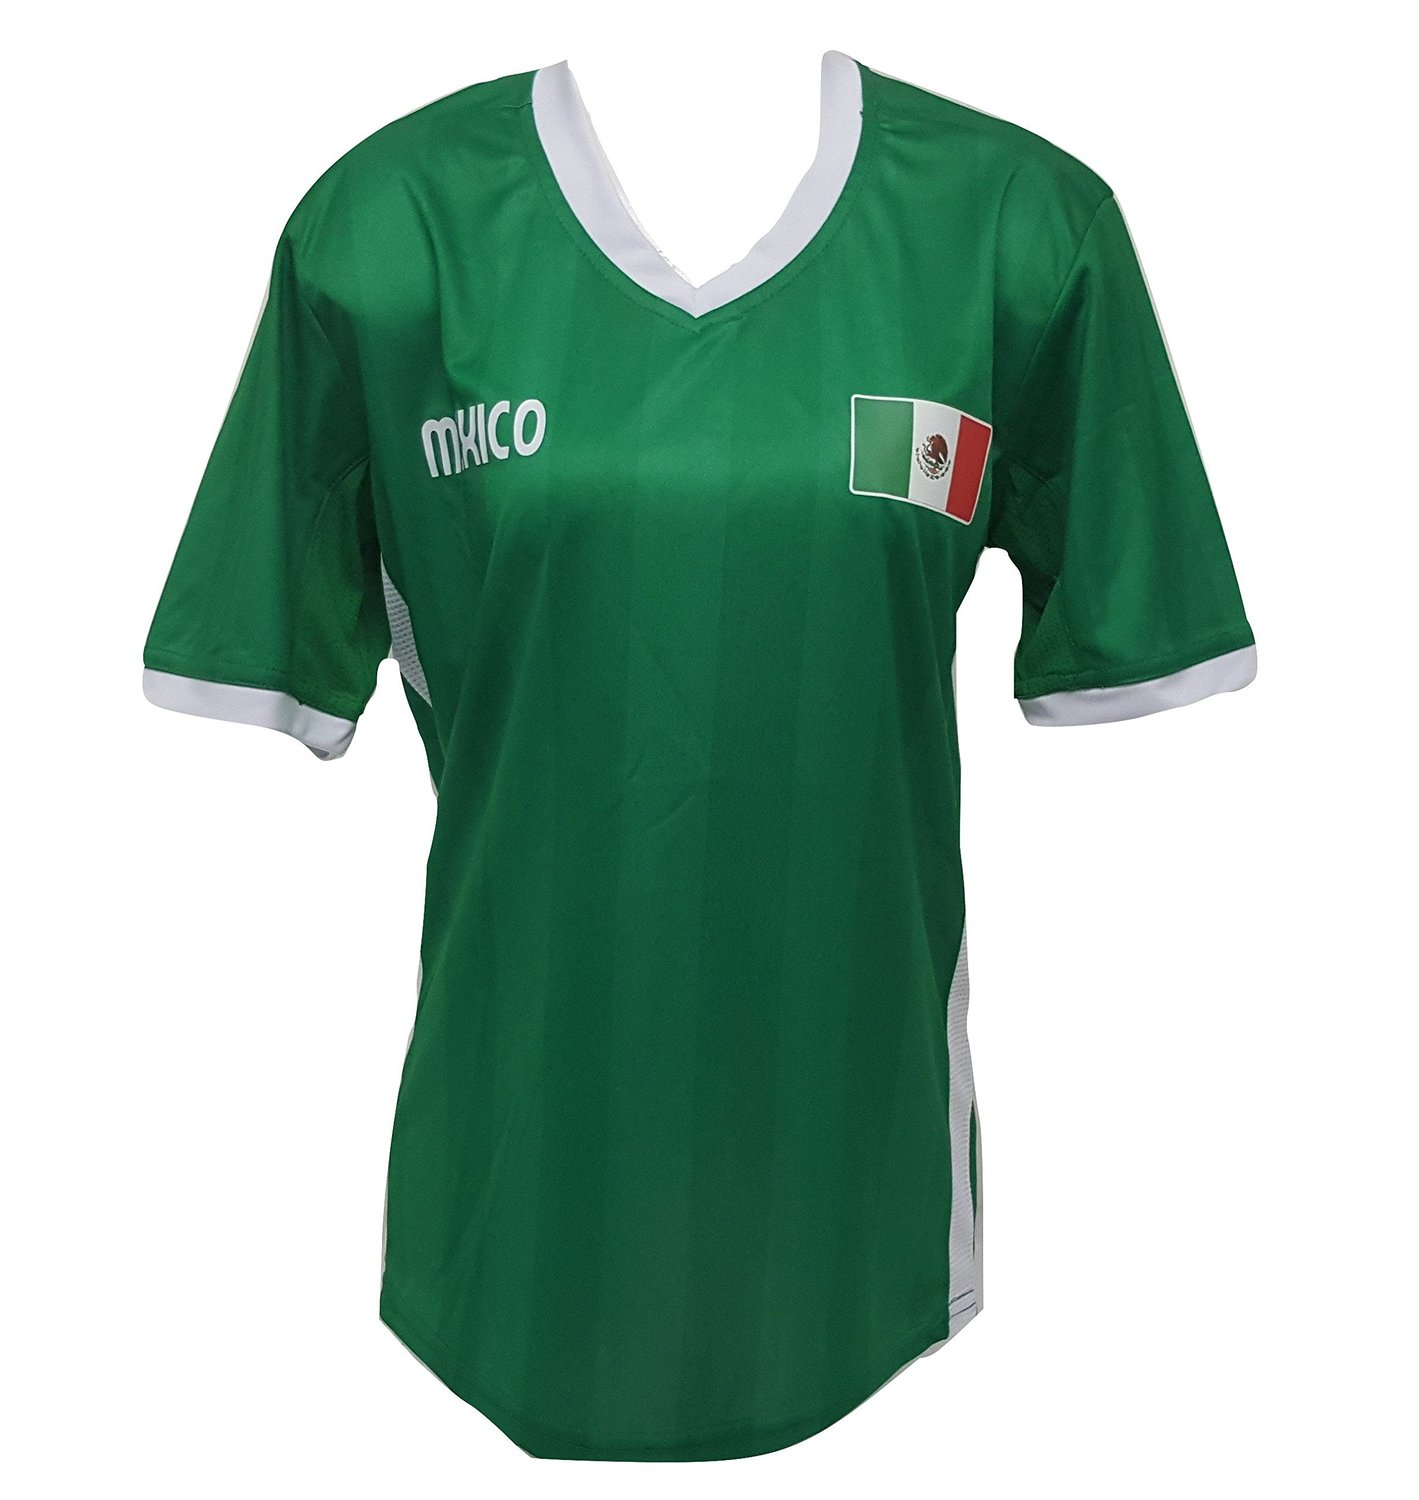 Arza Sports Womens Plus Size Mexico Soccer Green Jersey V-Neck T Shirt S,M,L,XL,XXL